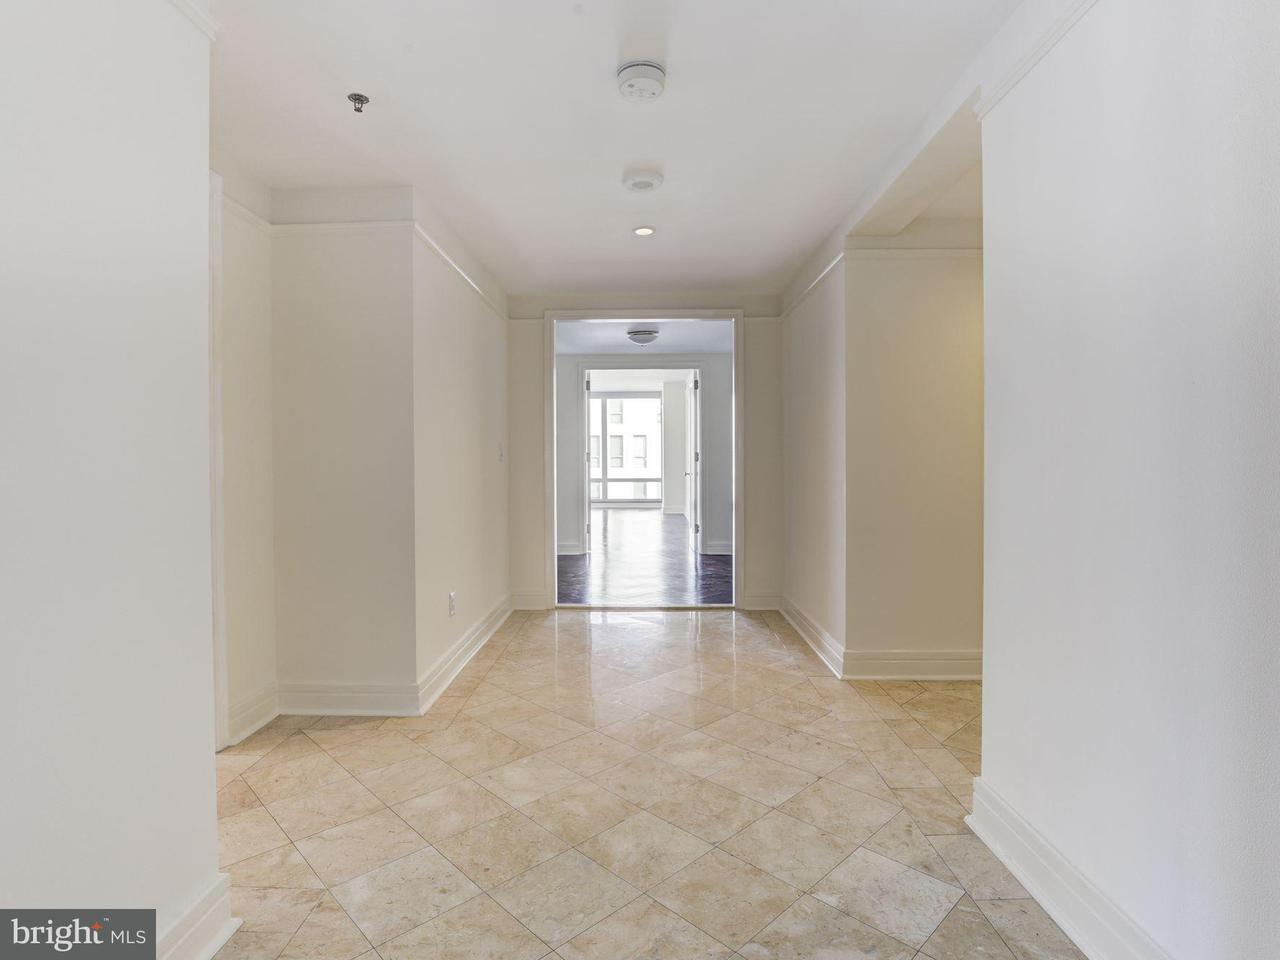 Additional photo for property listing at 1155 23rd St NW #ph1a  Washington, District Of Columbia 20037 United States